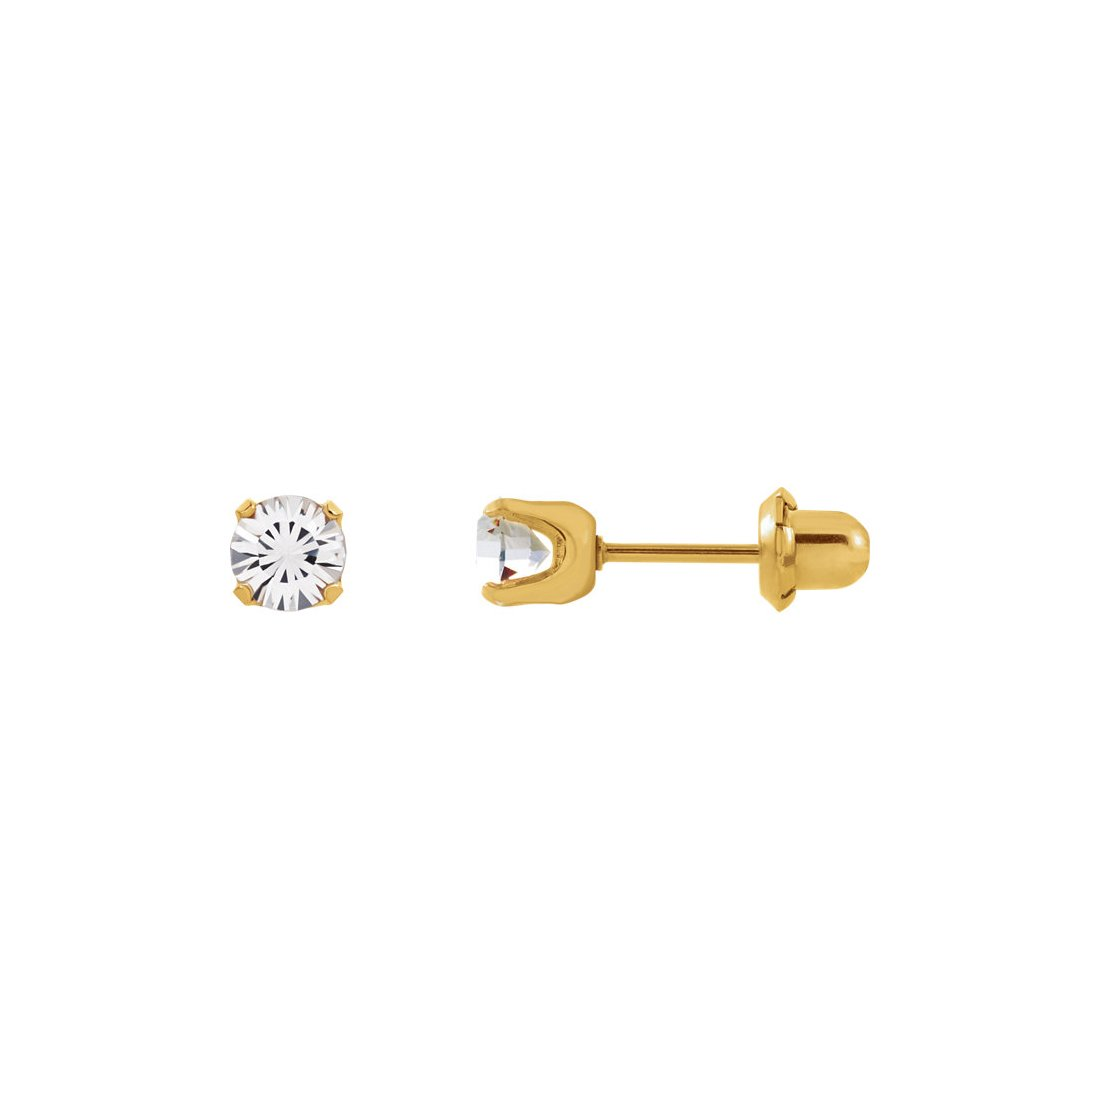 24K Gold Plated Stainless Steel - Cubic Zirconia Crystal - 33C by Inverness